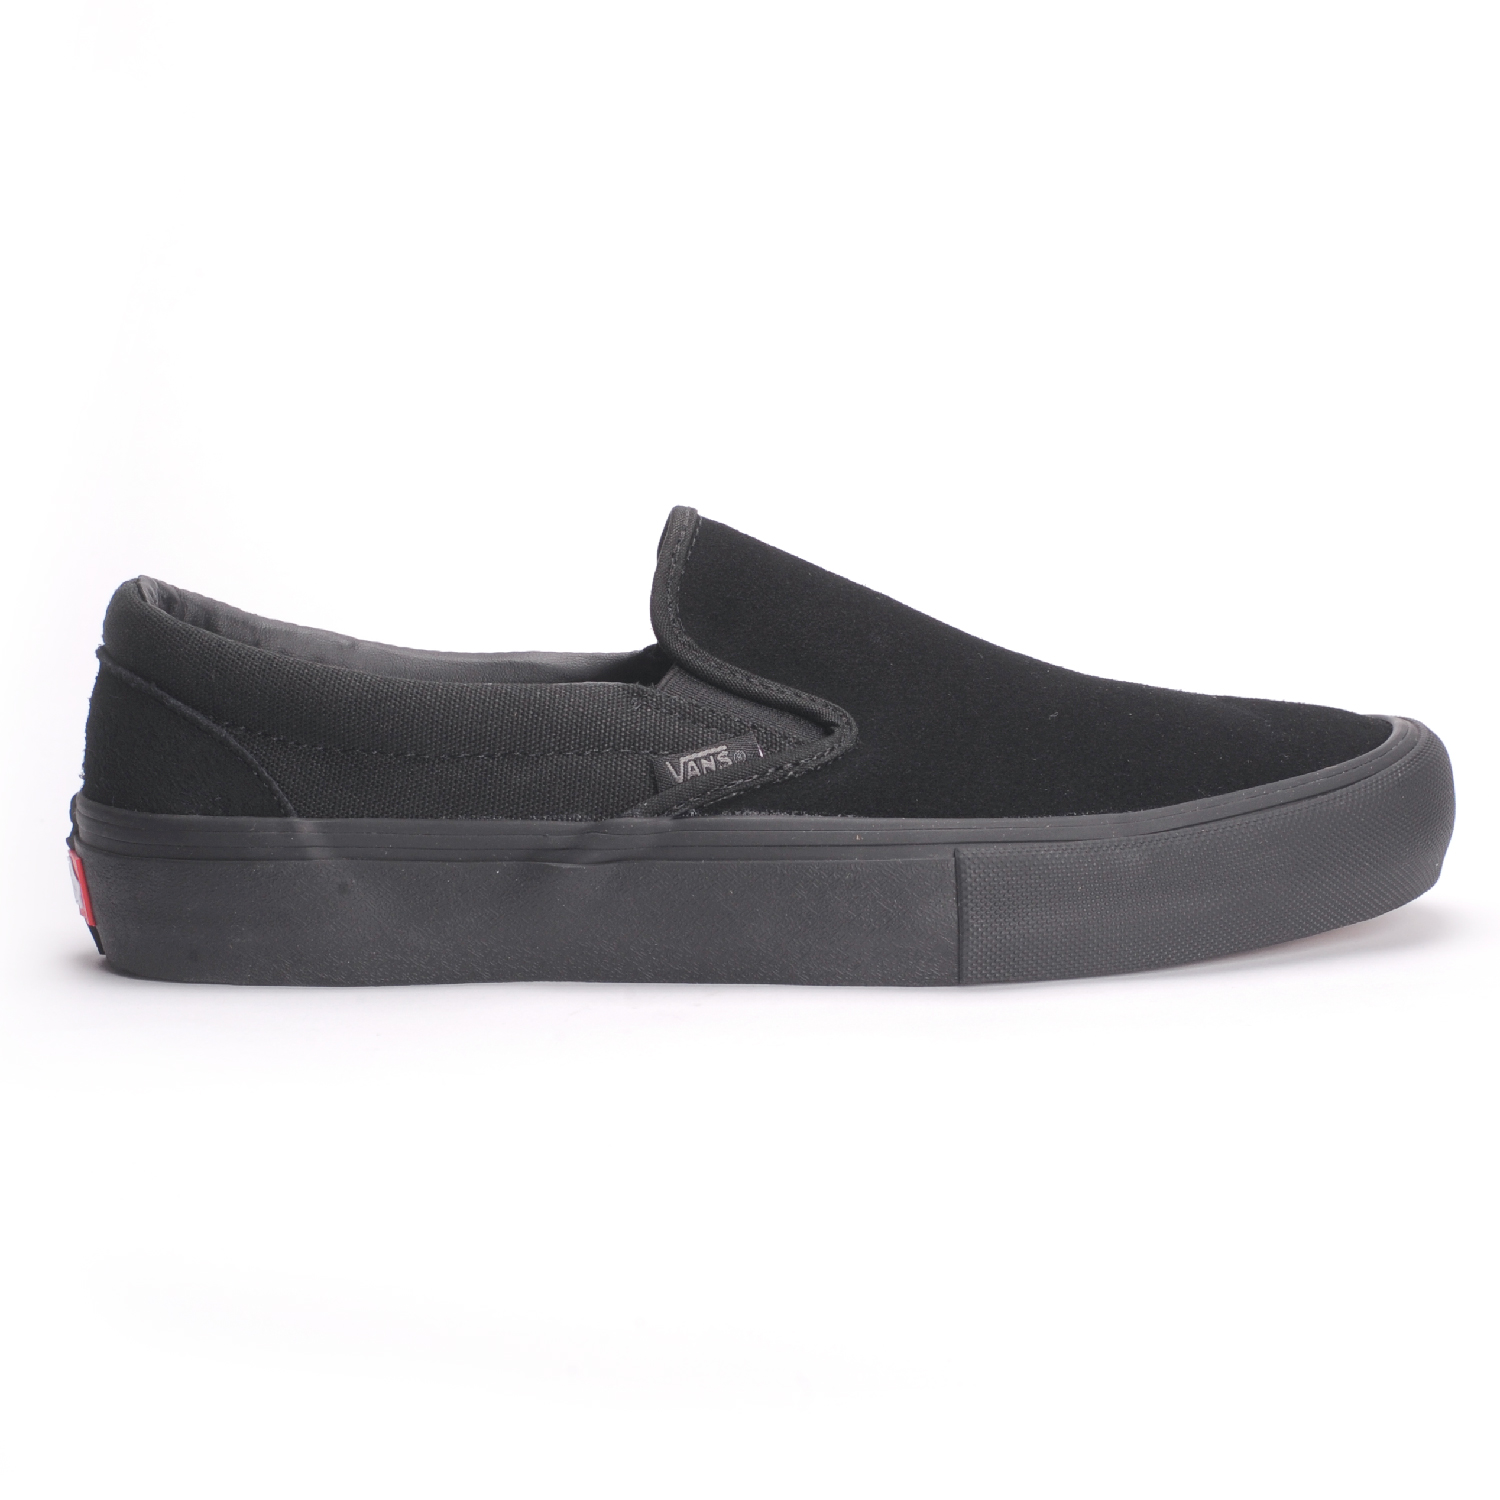 f870ab1c69 Vans Slip-On Pro (Blackout) Men s Skate Shoes